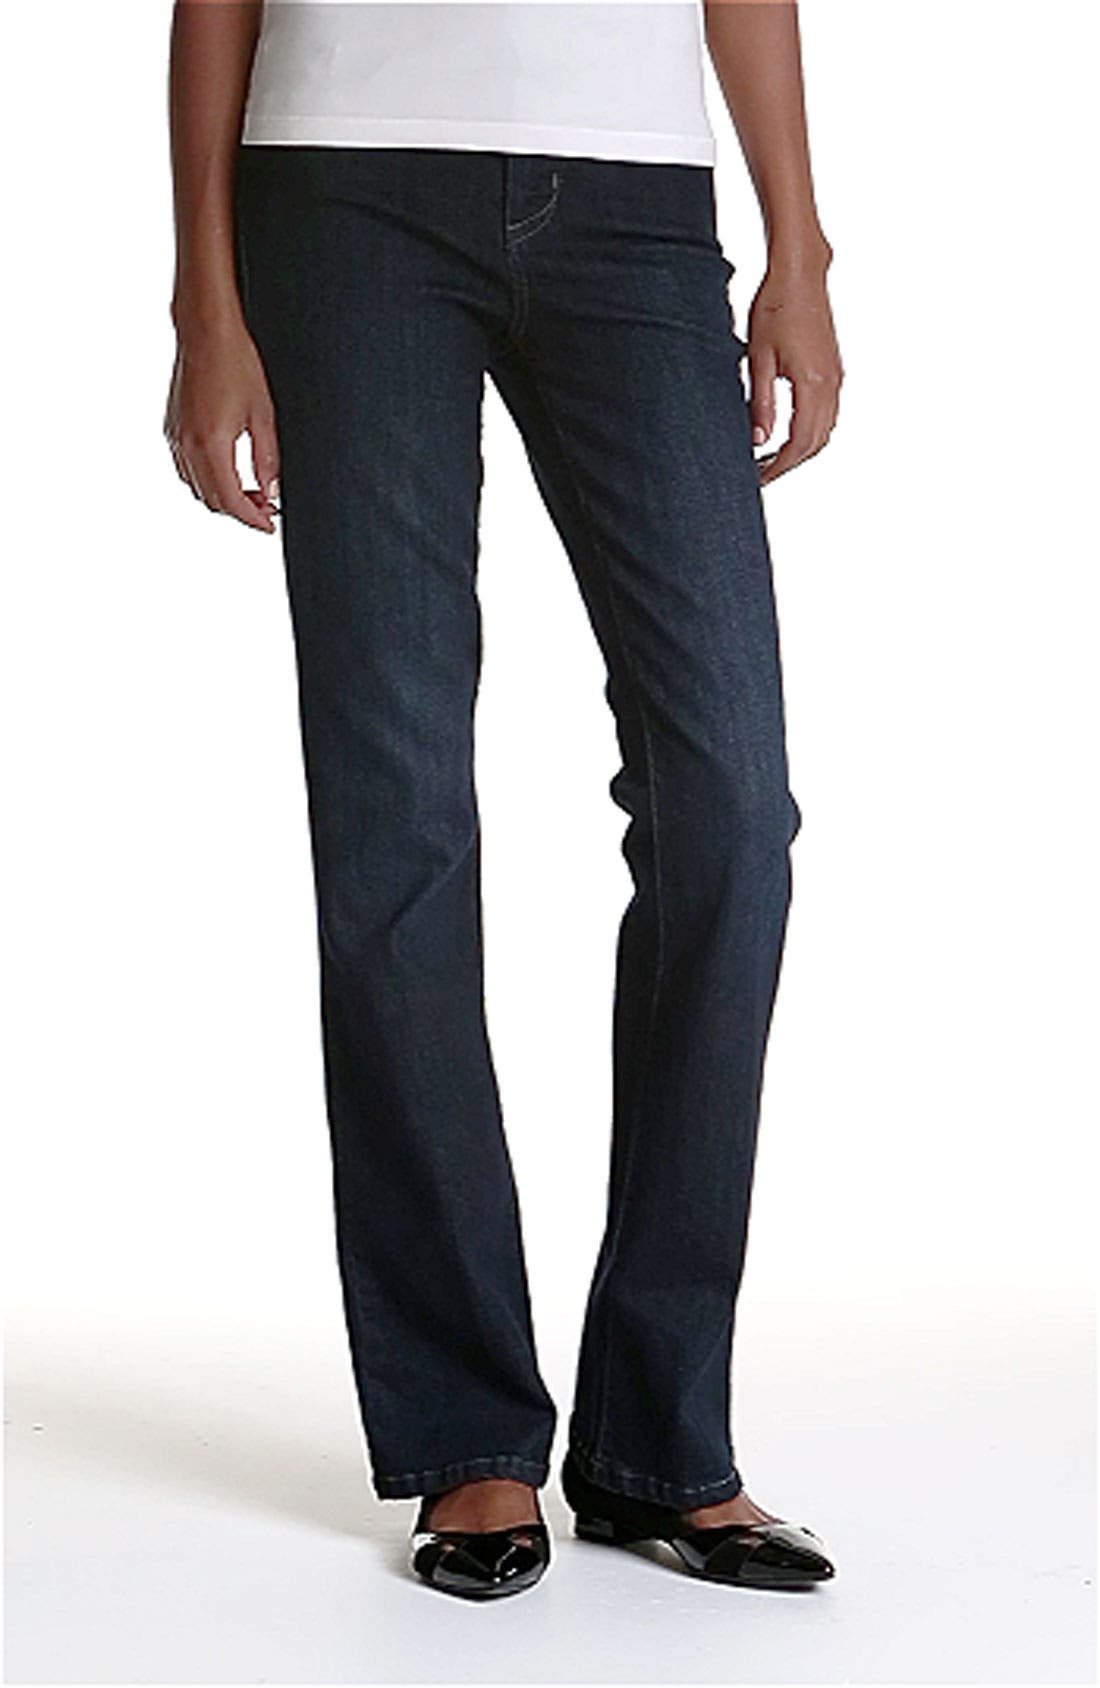 'Betty' Bootcut Stretch Jeans,                             Alternate thumbnail 2, color,                             400